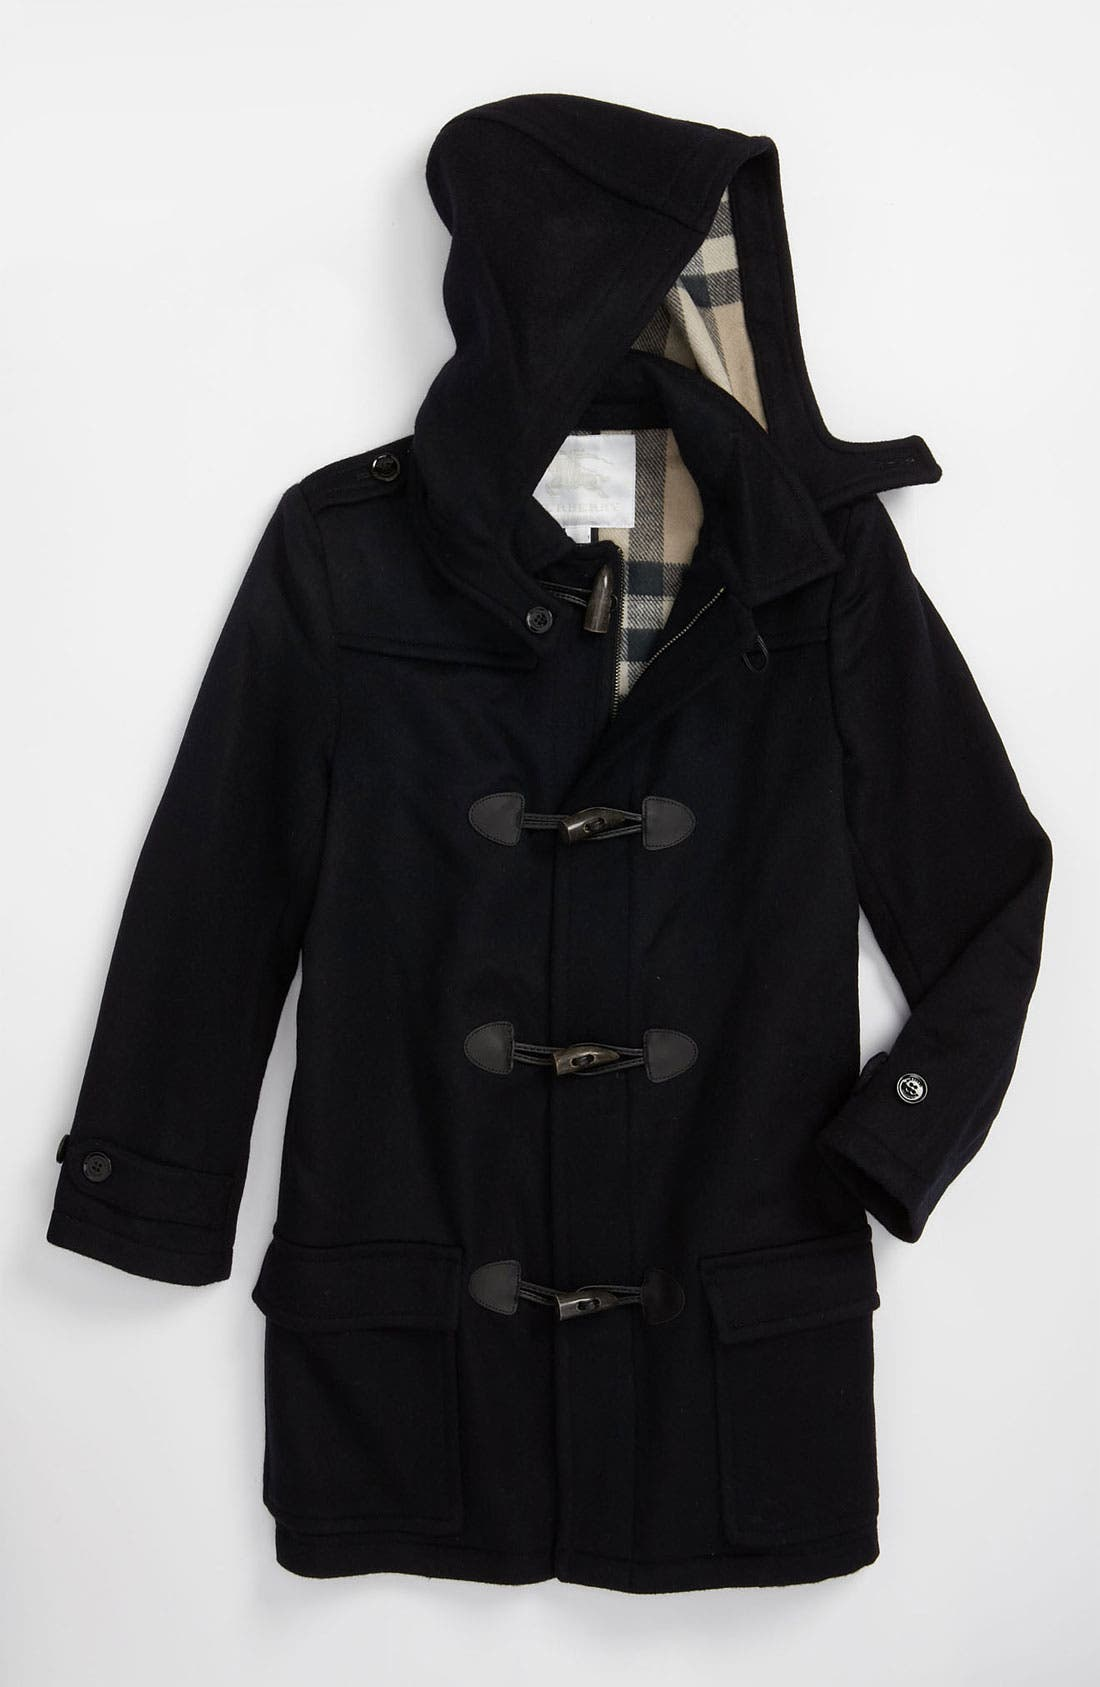 Alternate Image 1 Selected - Burberry Wool Duffle Coat (Little Boys)